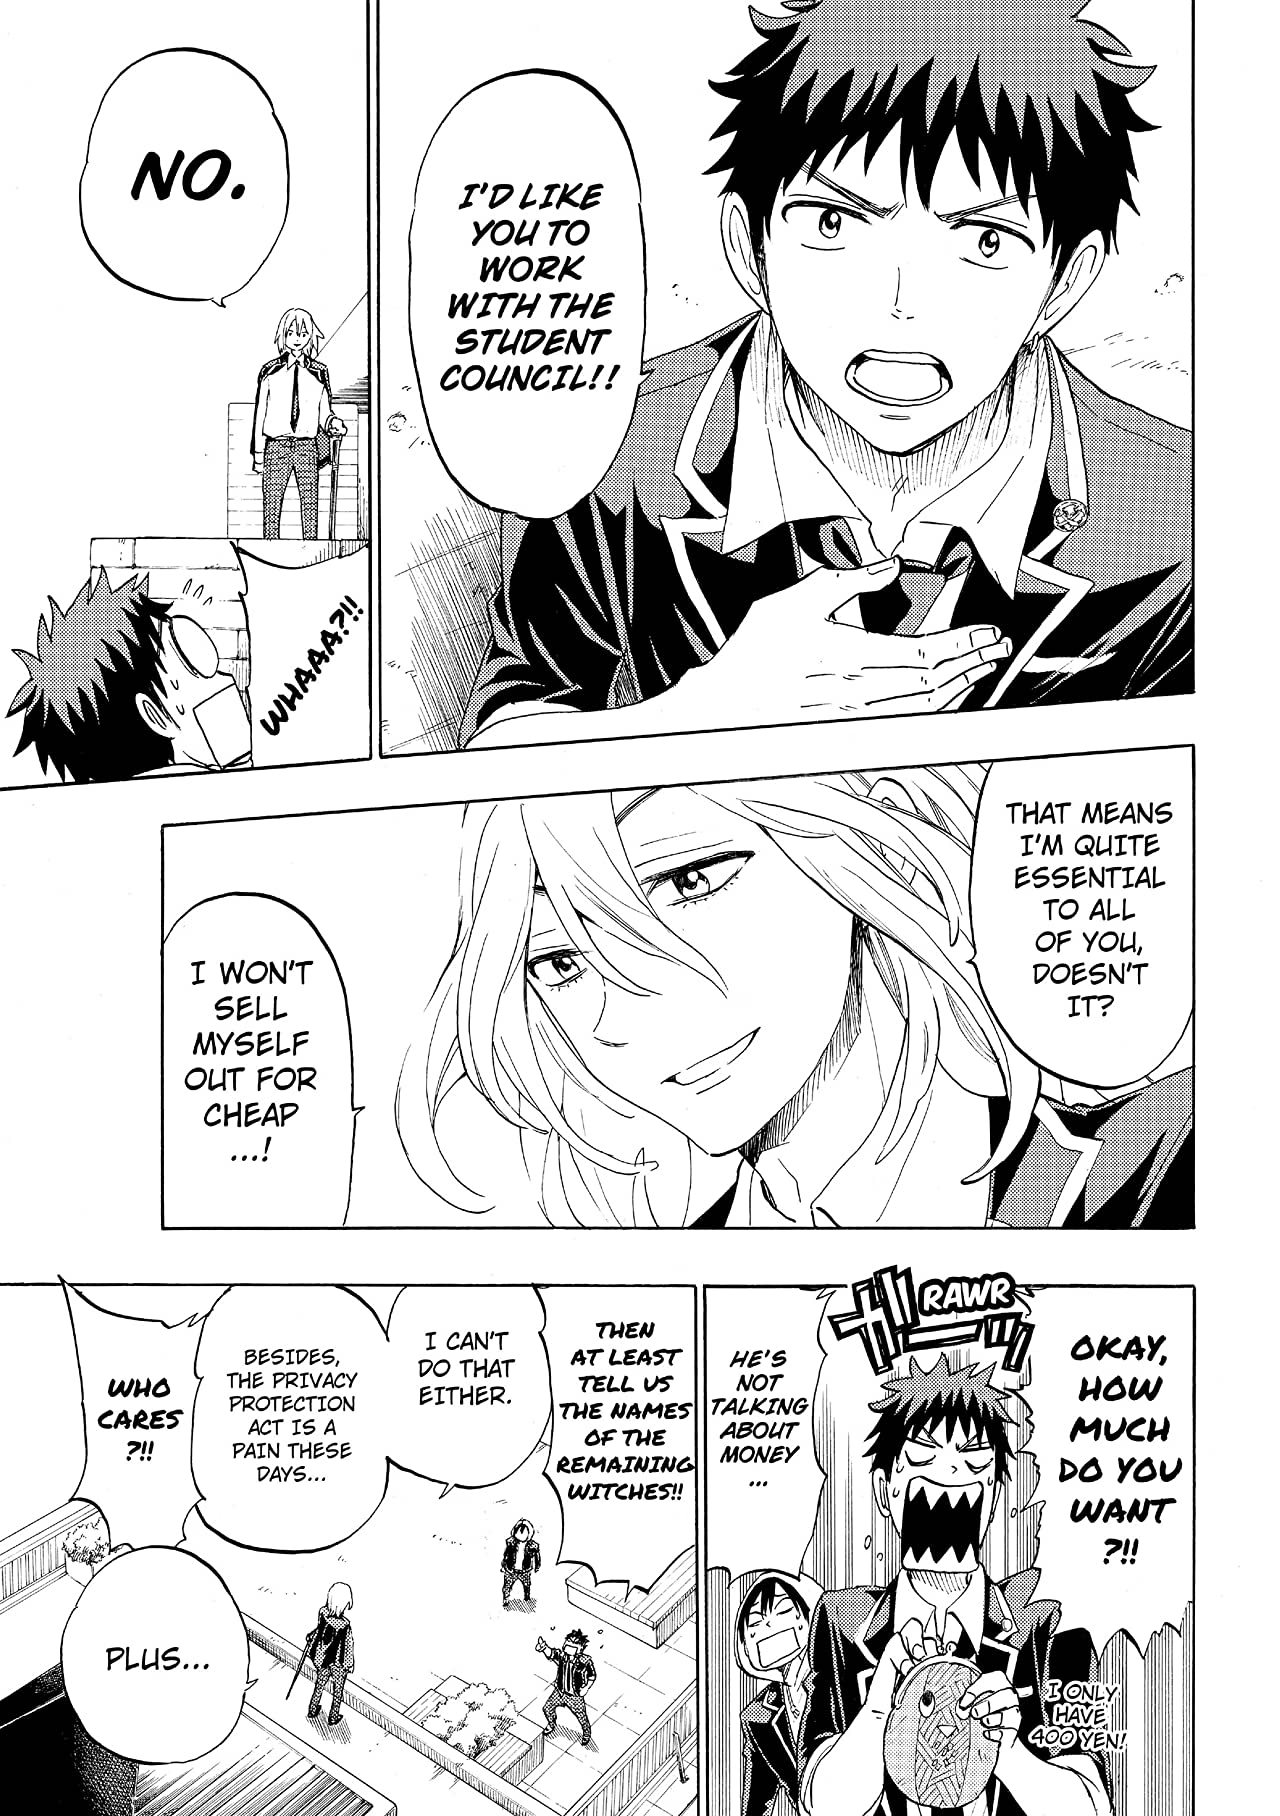 Yamada-kun and the Seven Witches #125